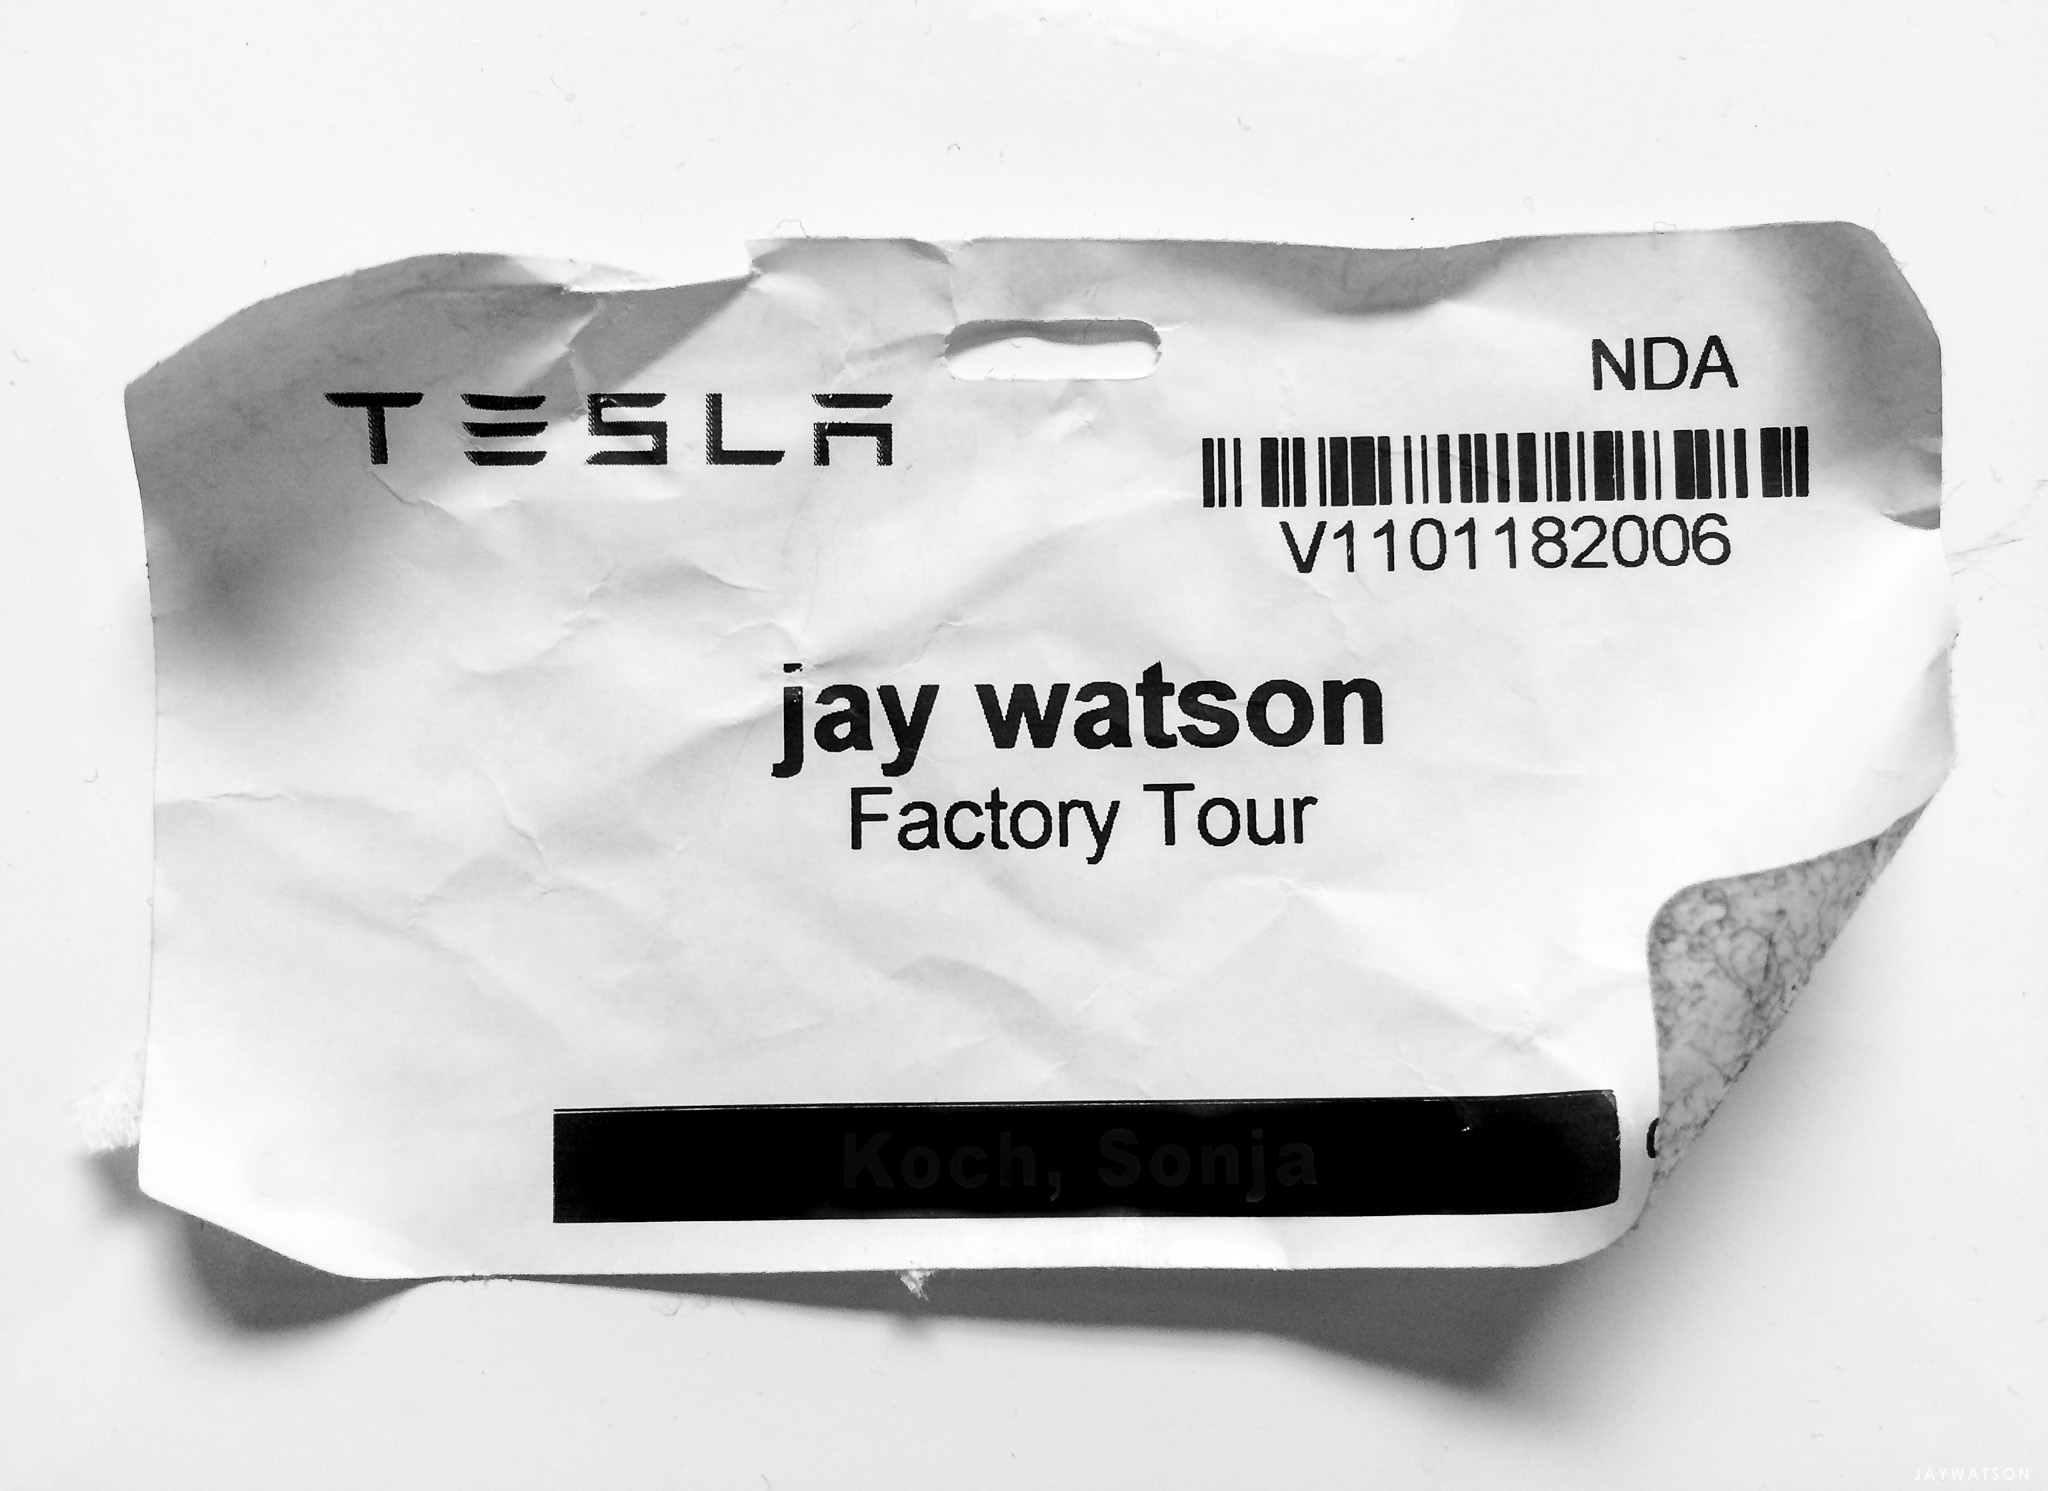 Tesla factory tour badge